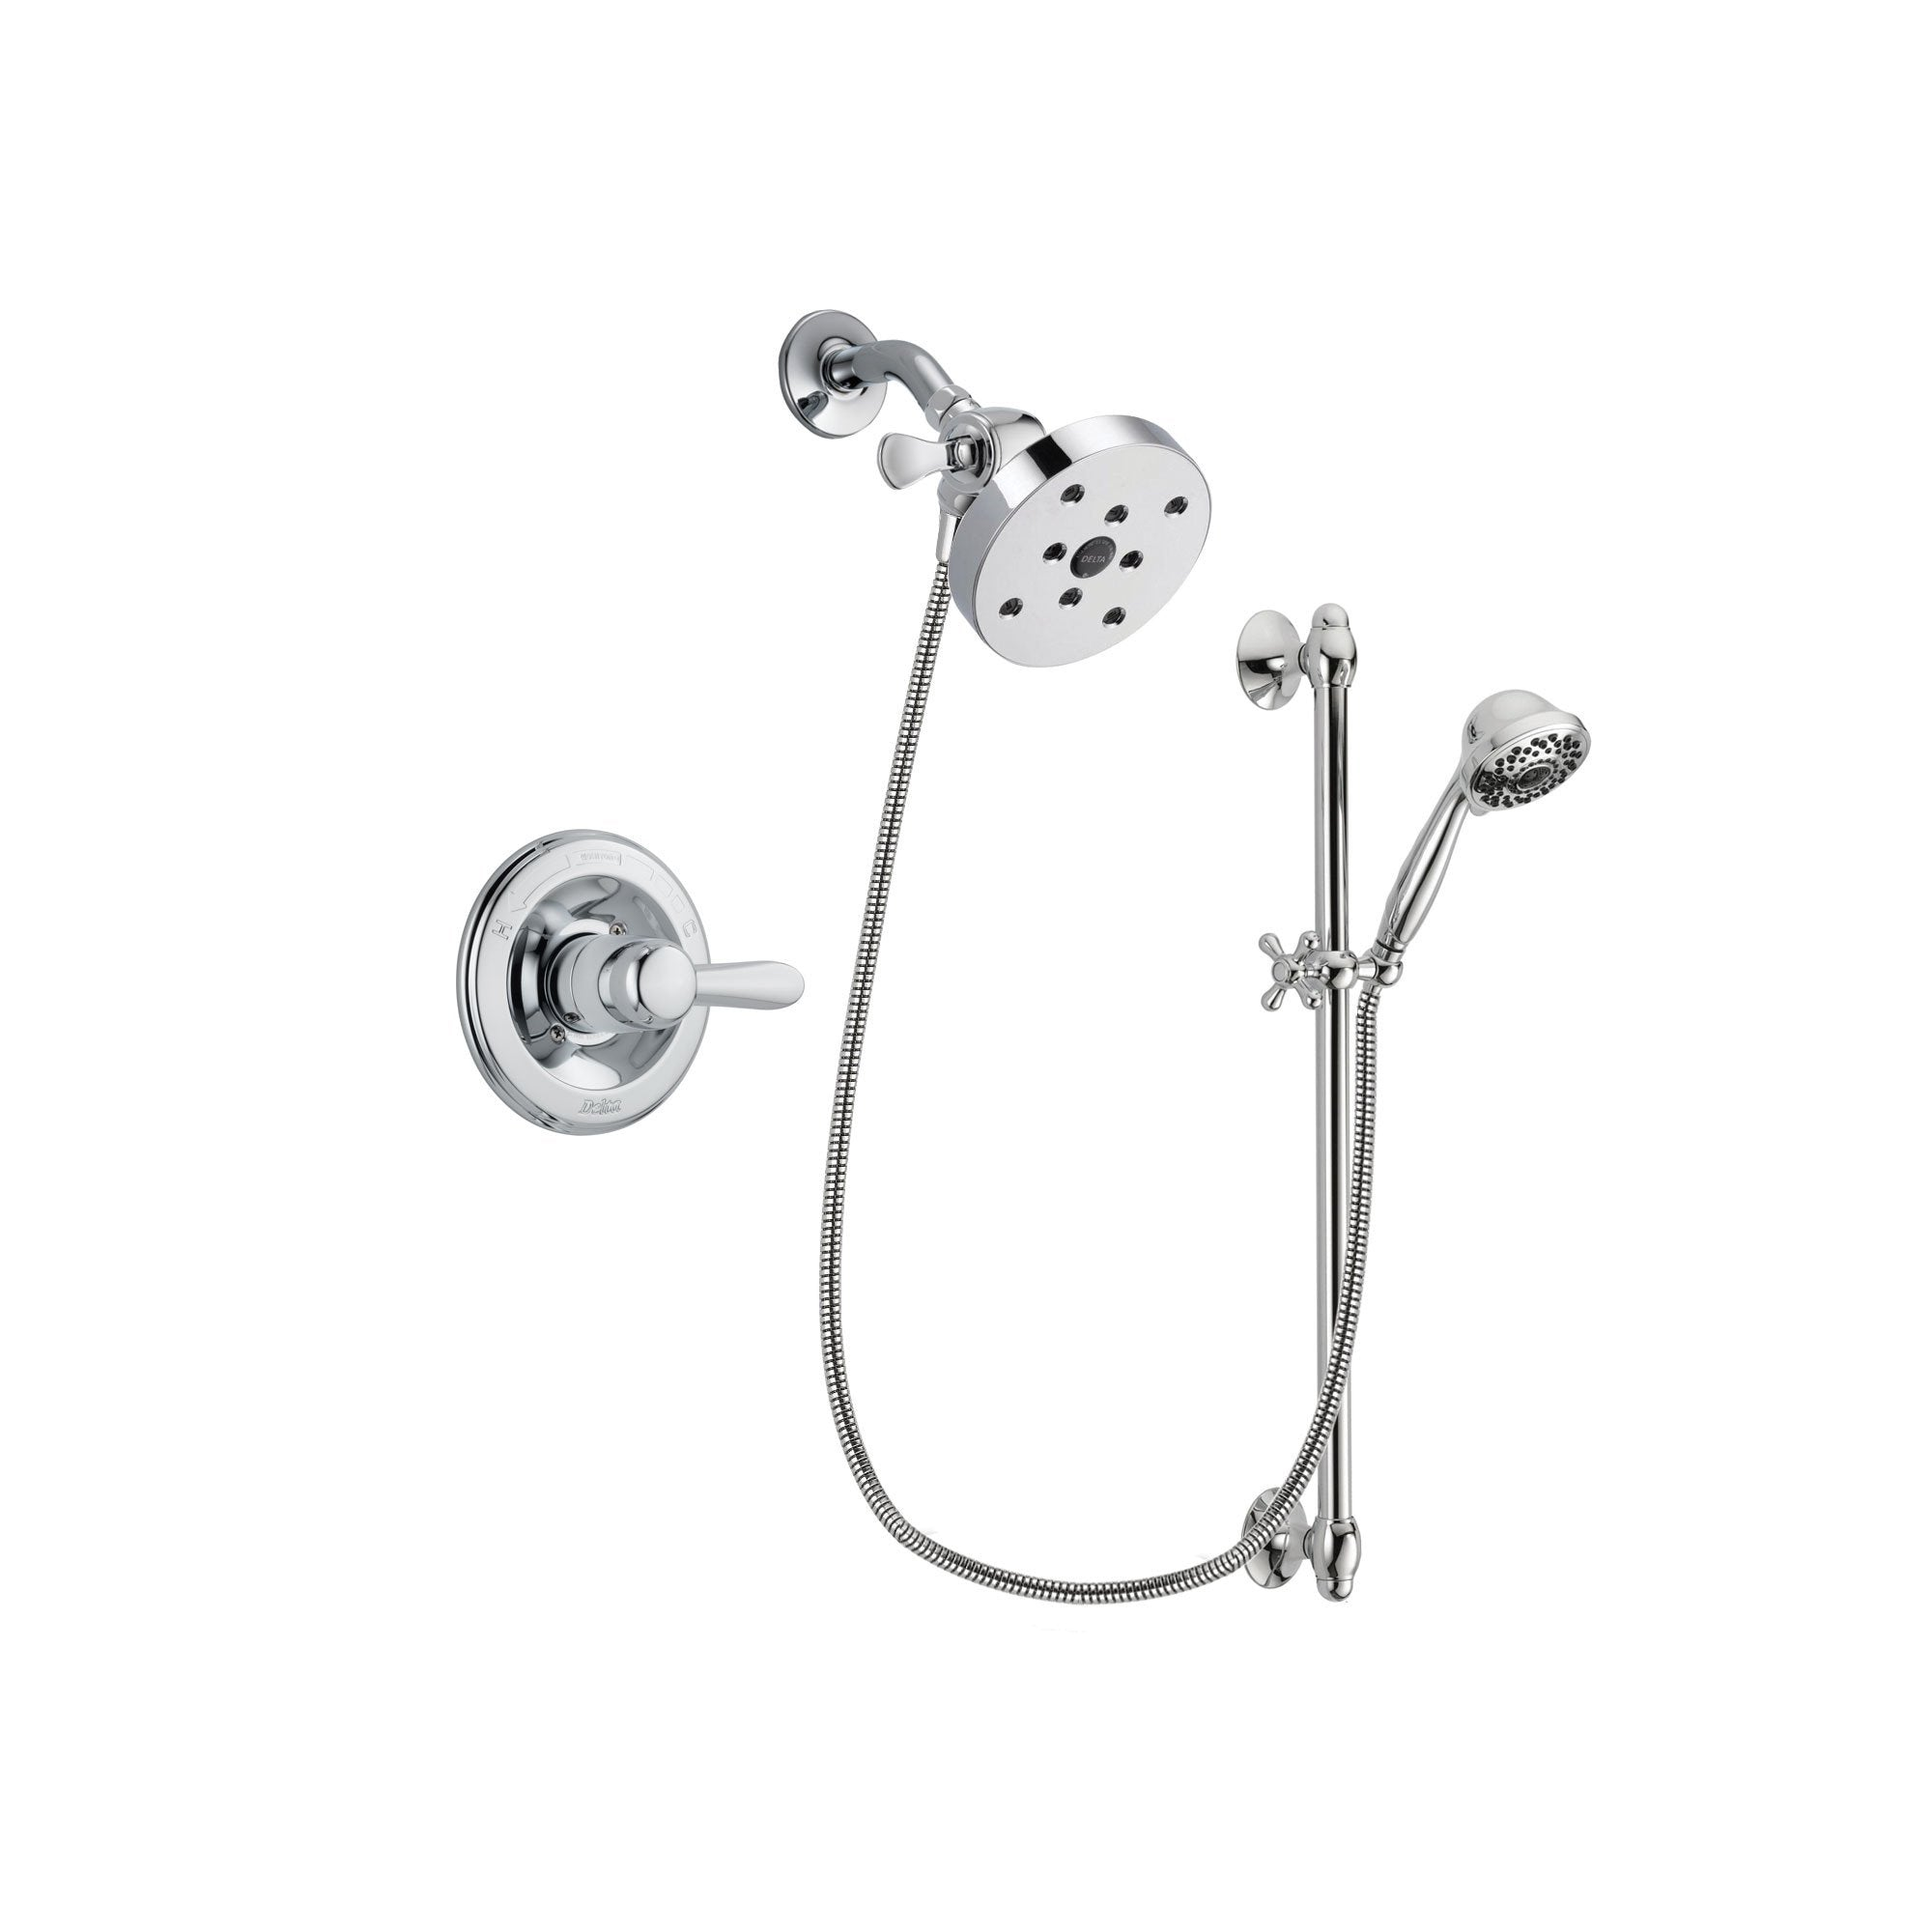 Delta Lahara Chrome Shower Faucet System w/ Shower Head and Hand Shower DSP0674V